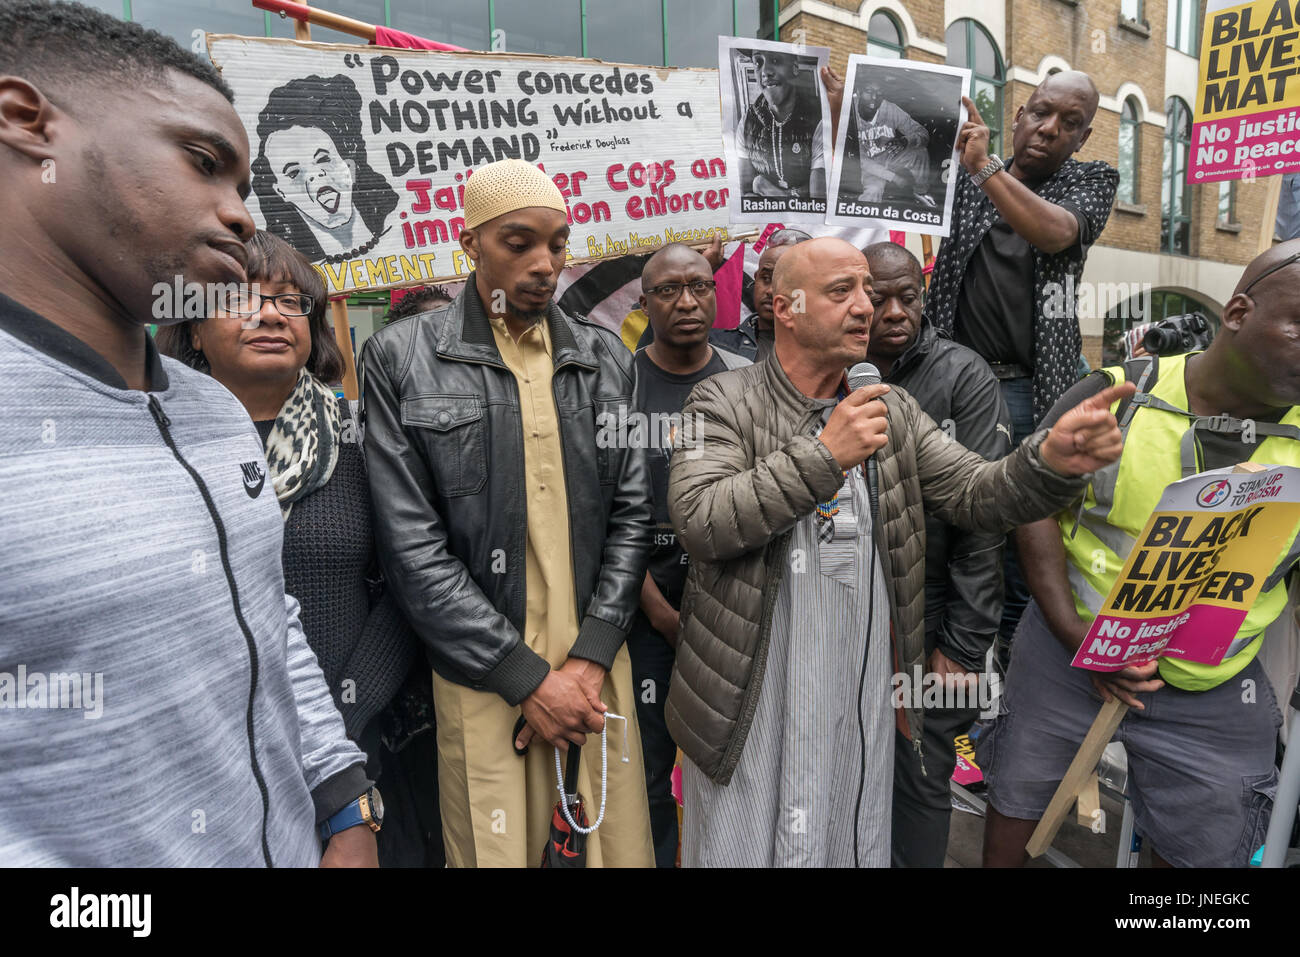 July 29, 2017 - London, UK - London, UK. 29th July 2017. A speaker from the local mosque at the protest outside - Stock Image